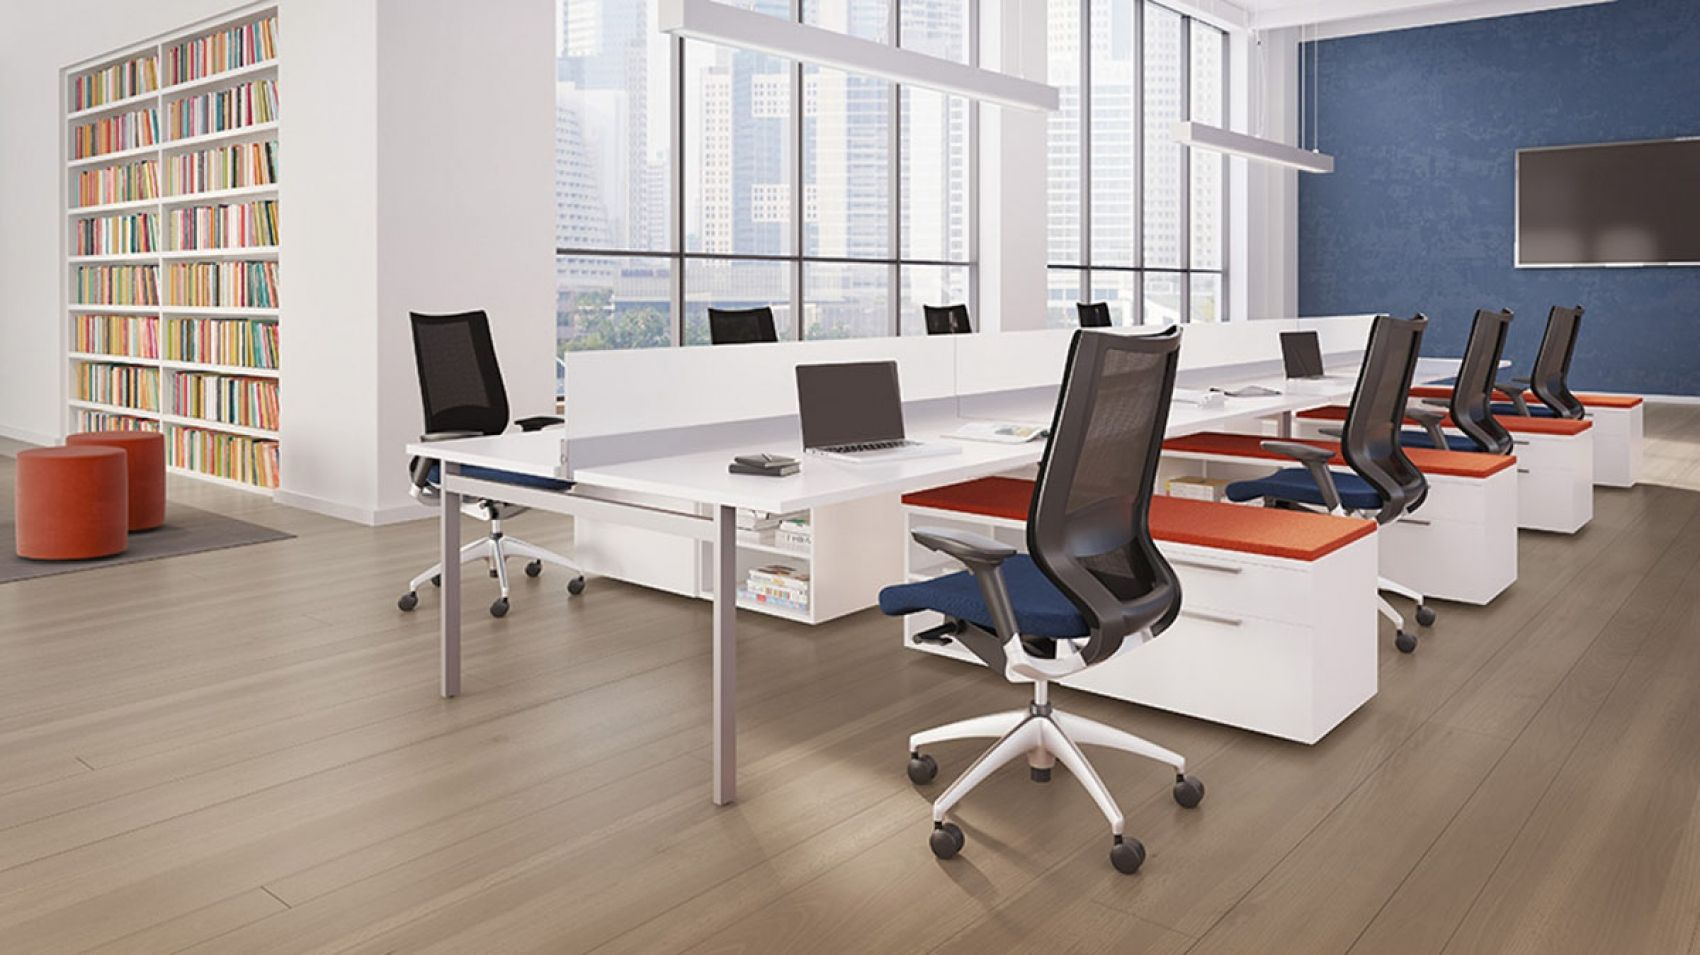 STAKS First Office Open Plan Open Space Reconsider Because - Open office furniture